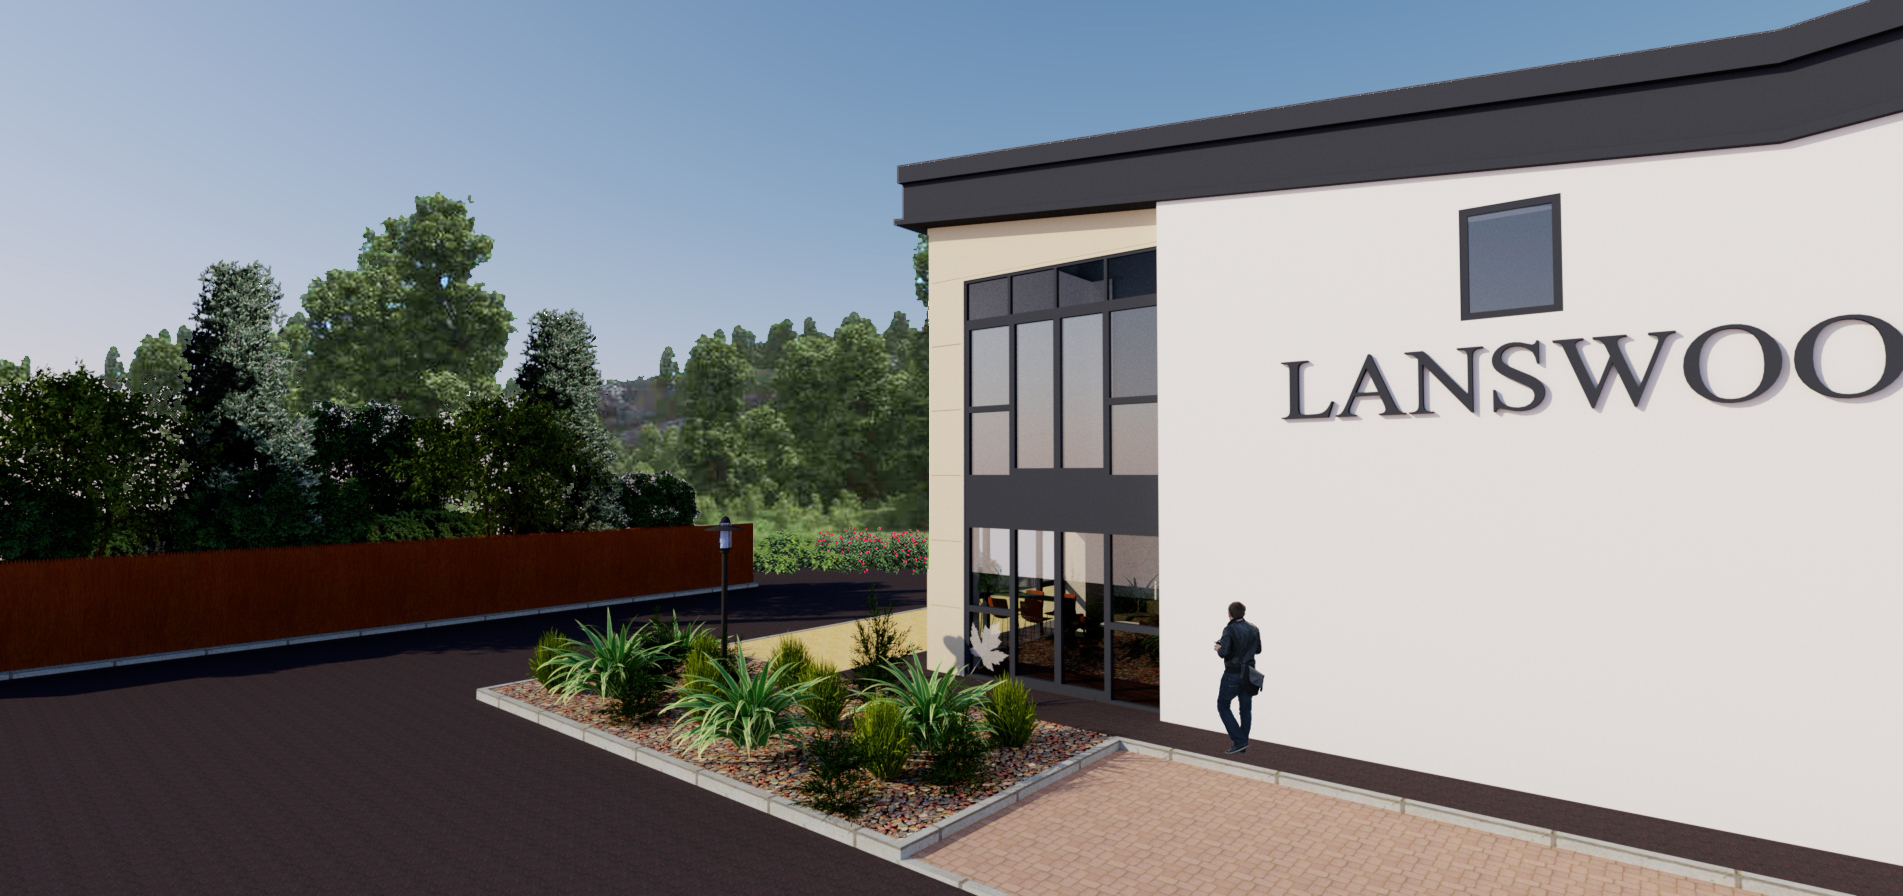 Lanswoodpark Exterior